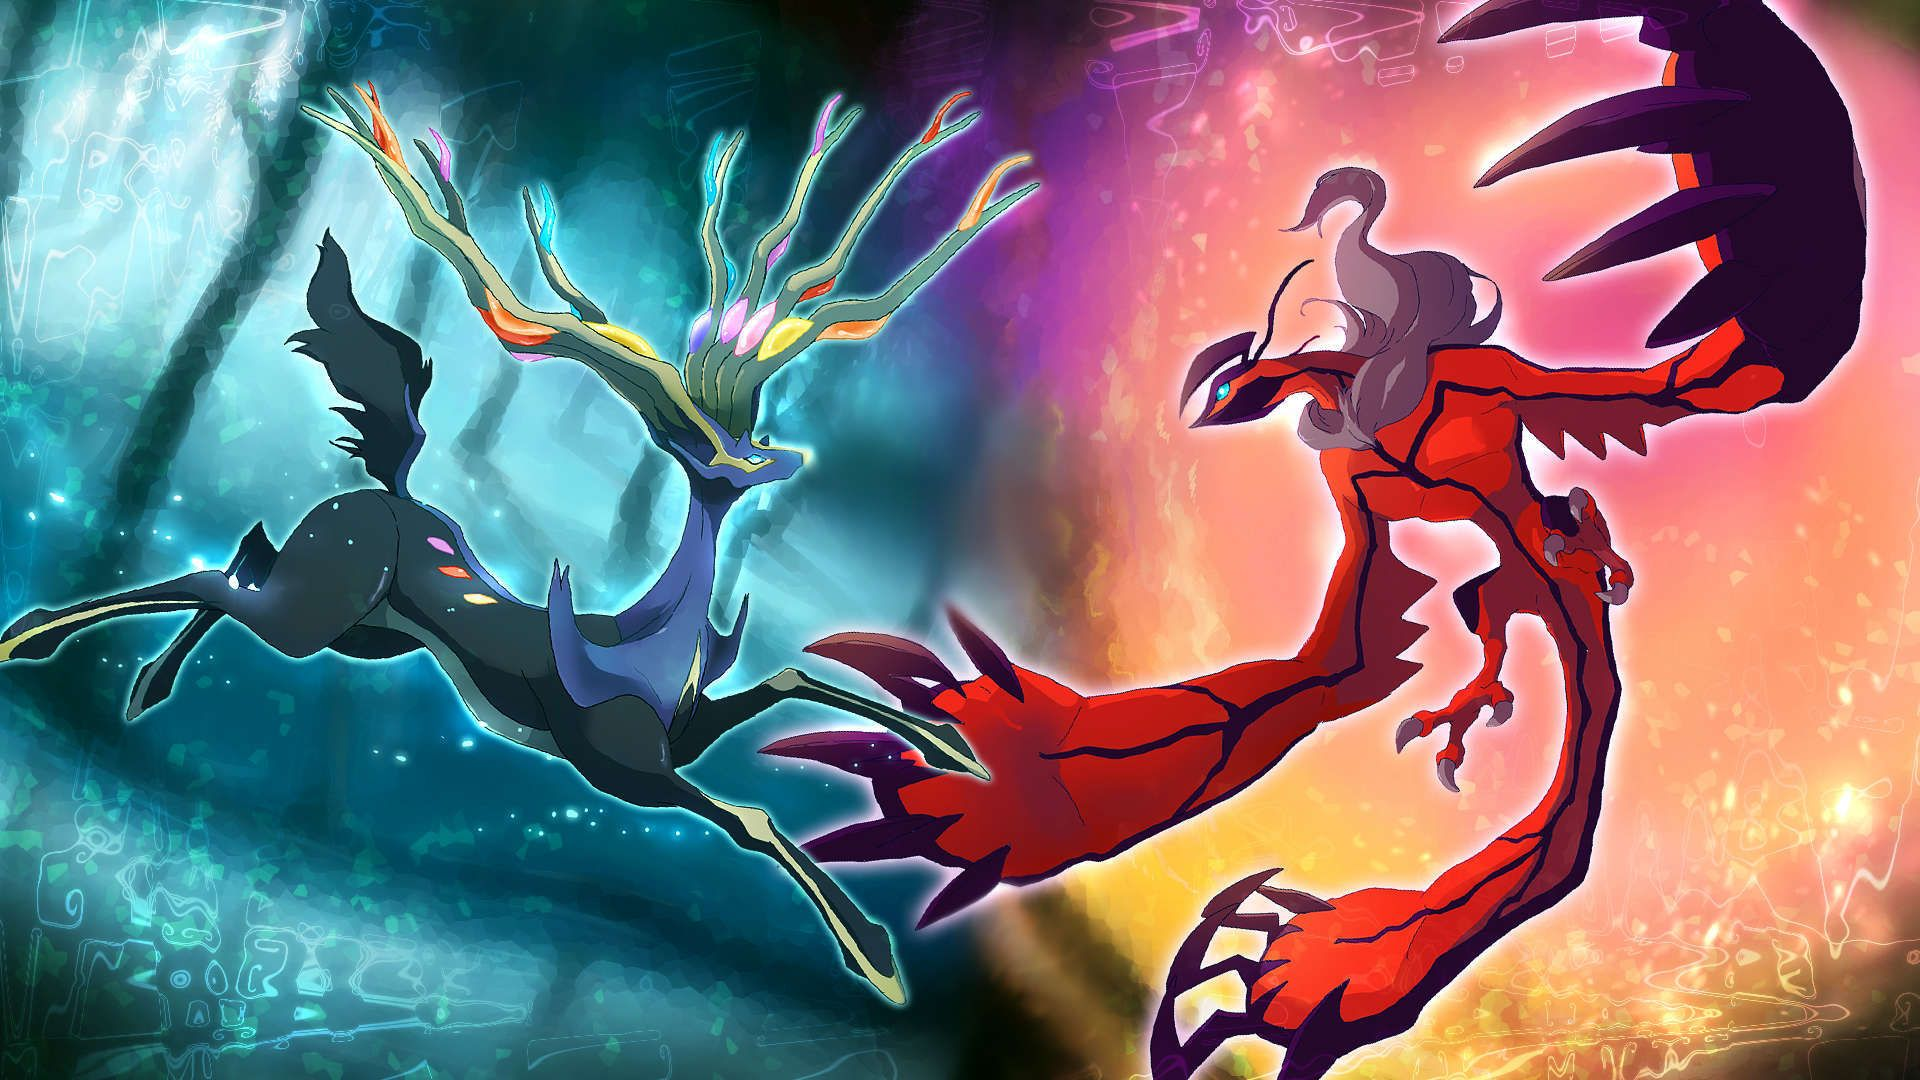 download All Legendary Pokemon Wallpapers [1920x1080] for 1920x1080